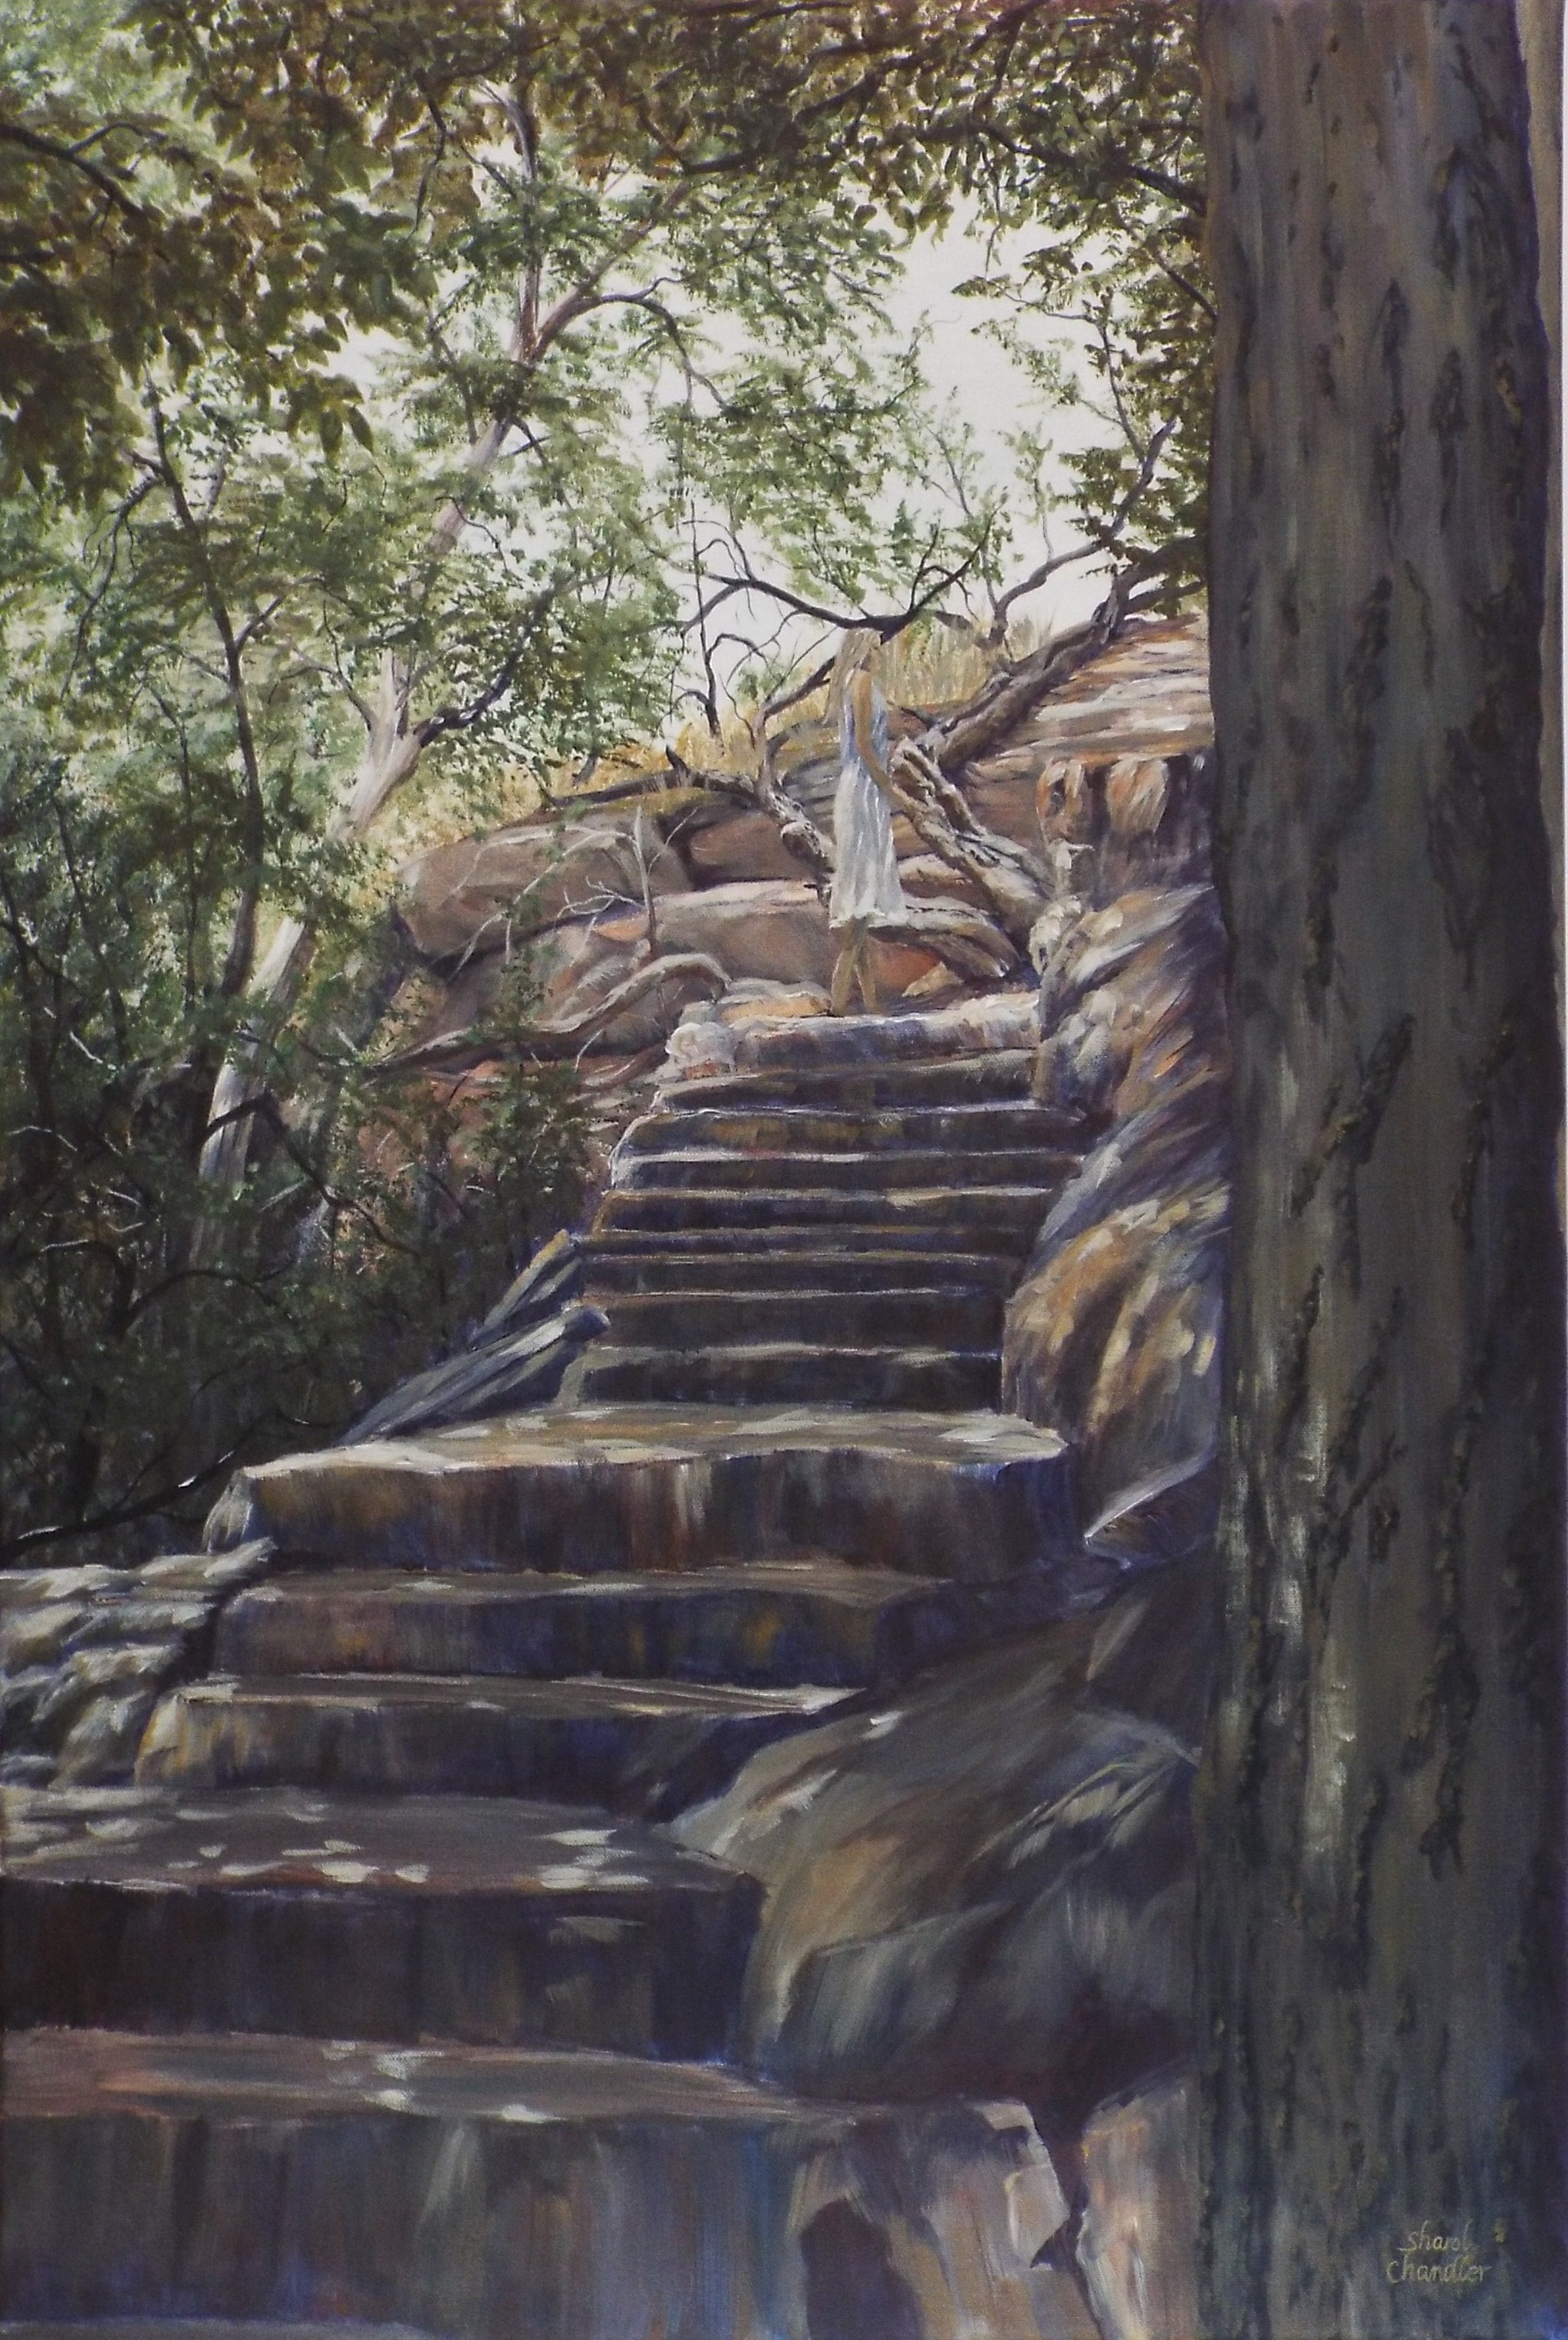 Stairway by the Well